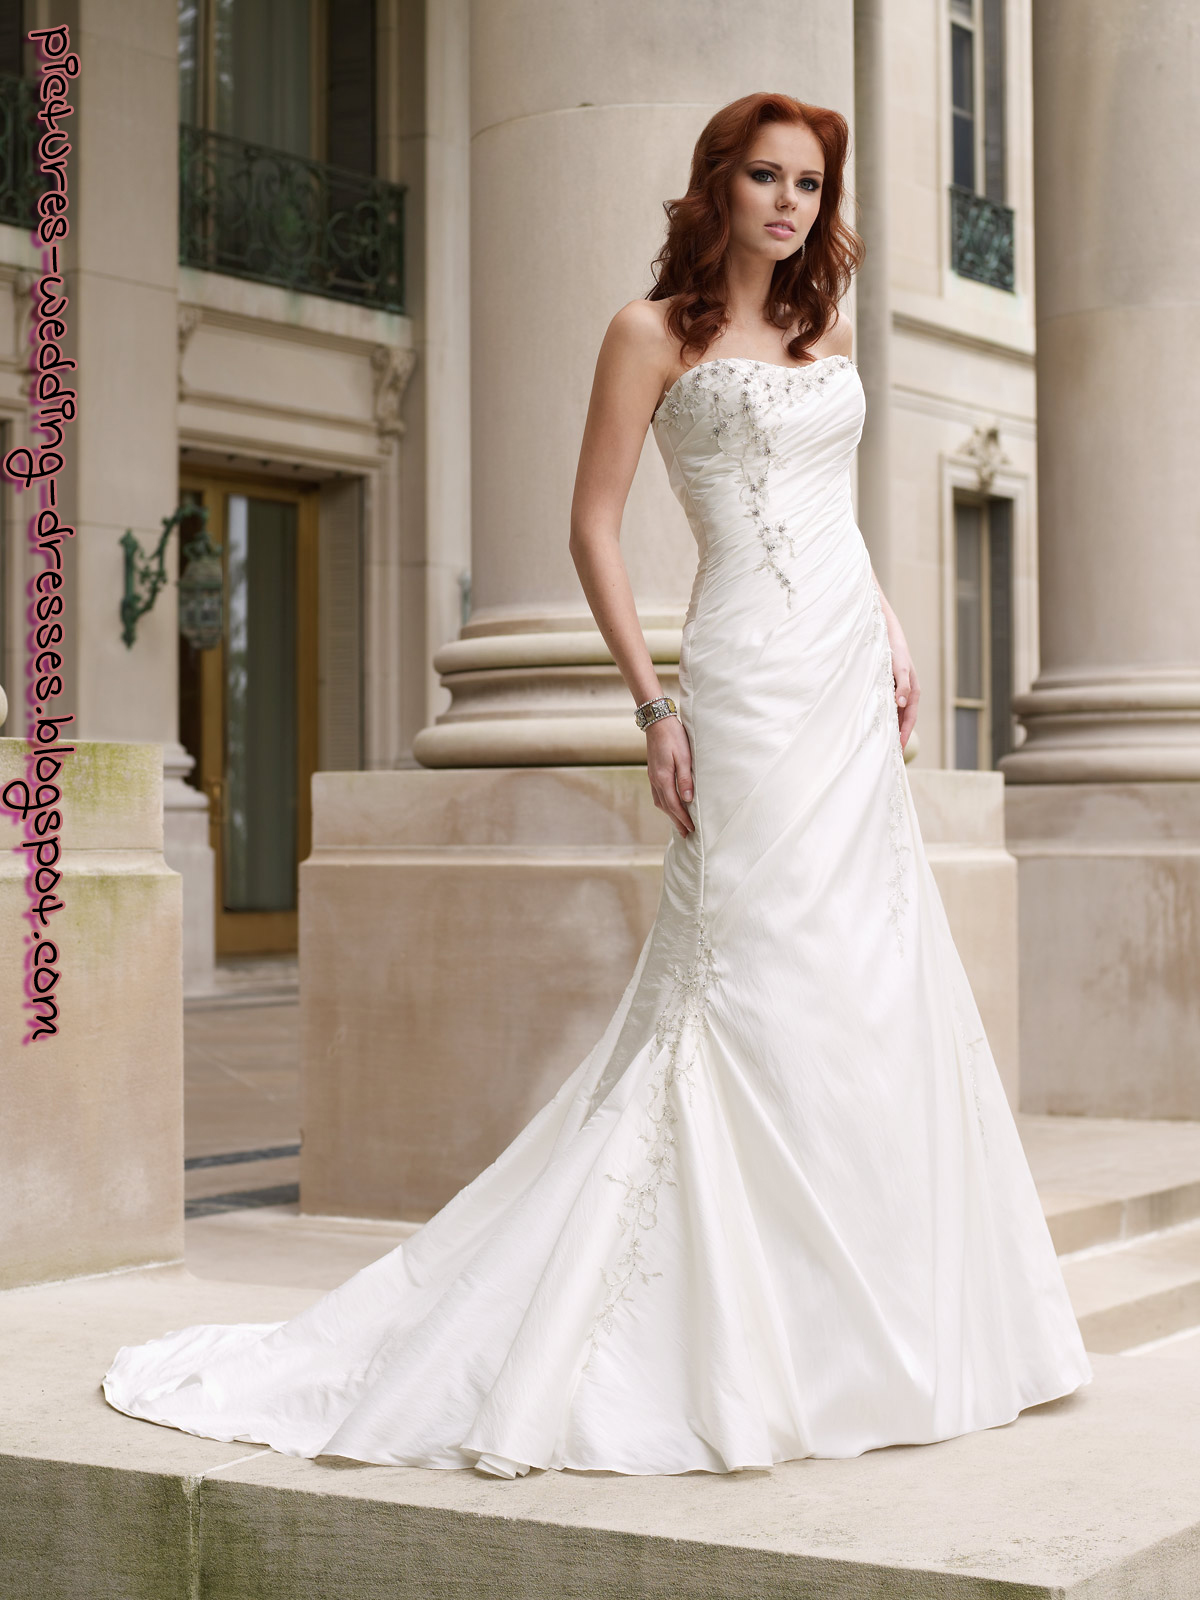 Photos wedding dresses photos formal bridal gowns and for A pretty wedding dress